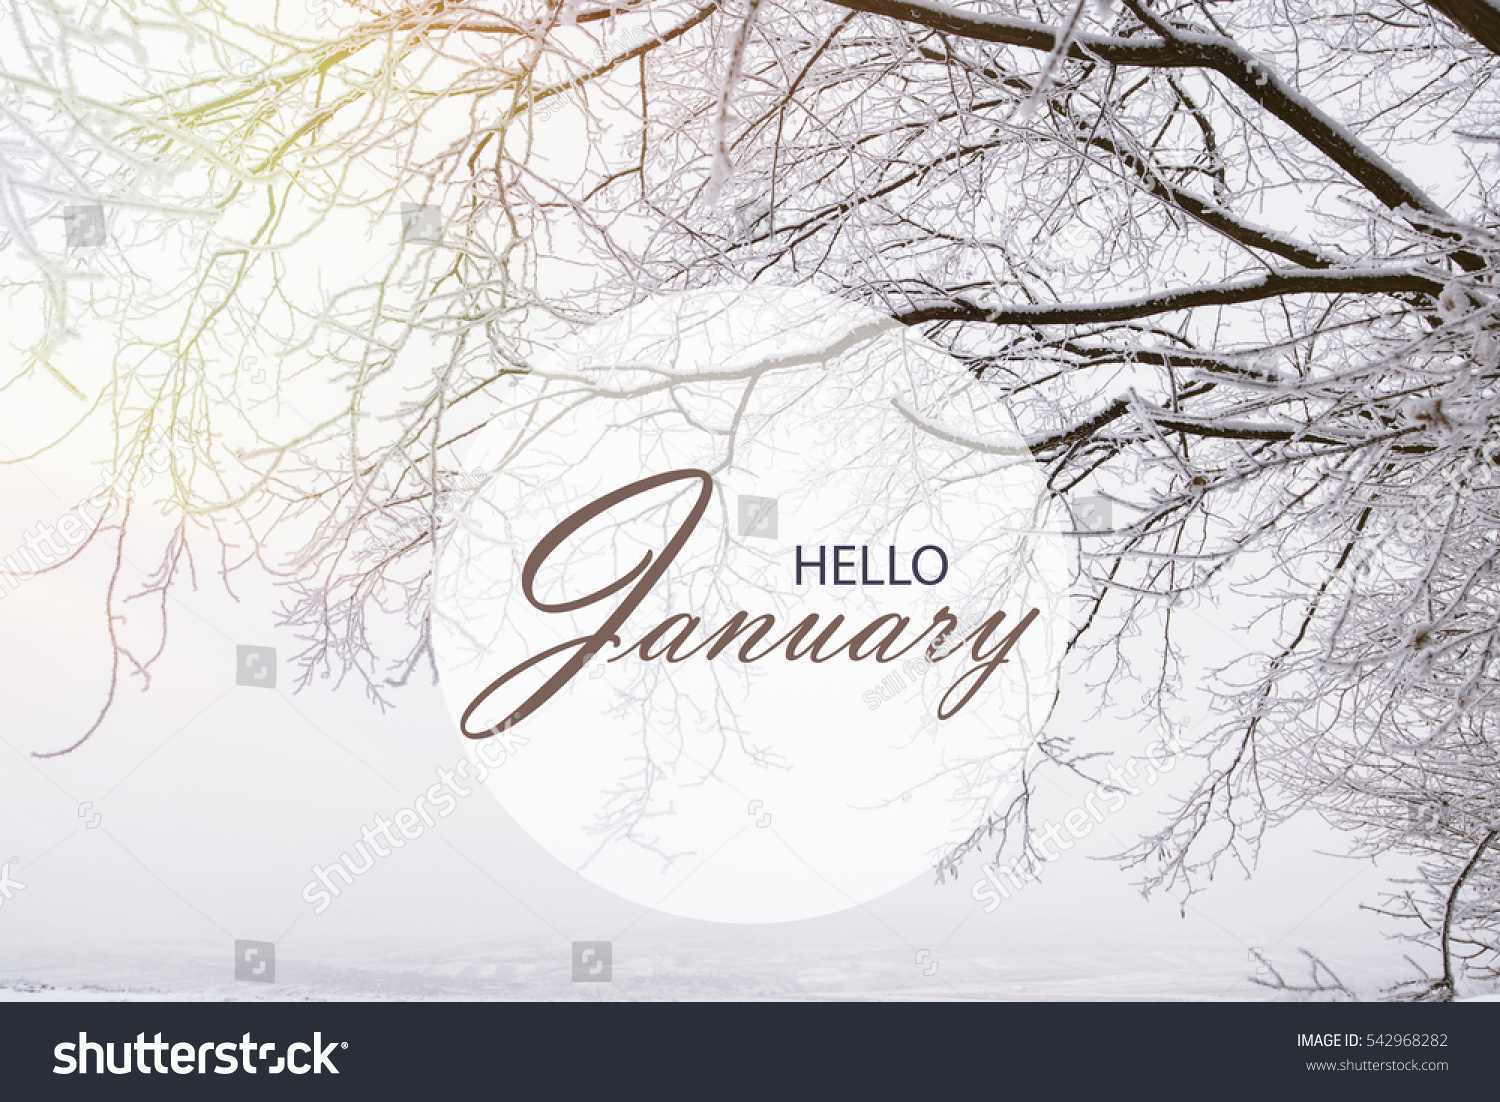 Looks - January Hello wallpaper pictures video